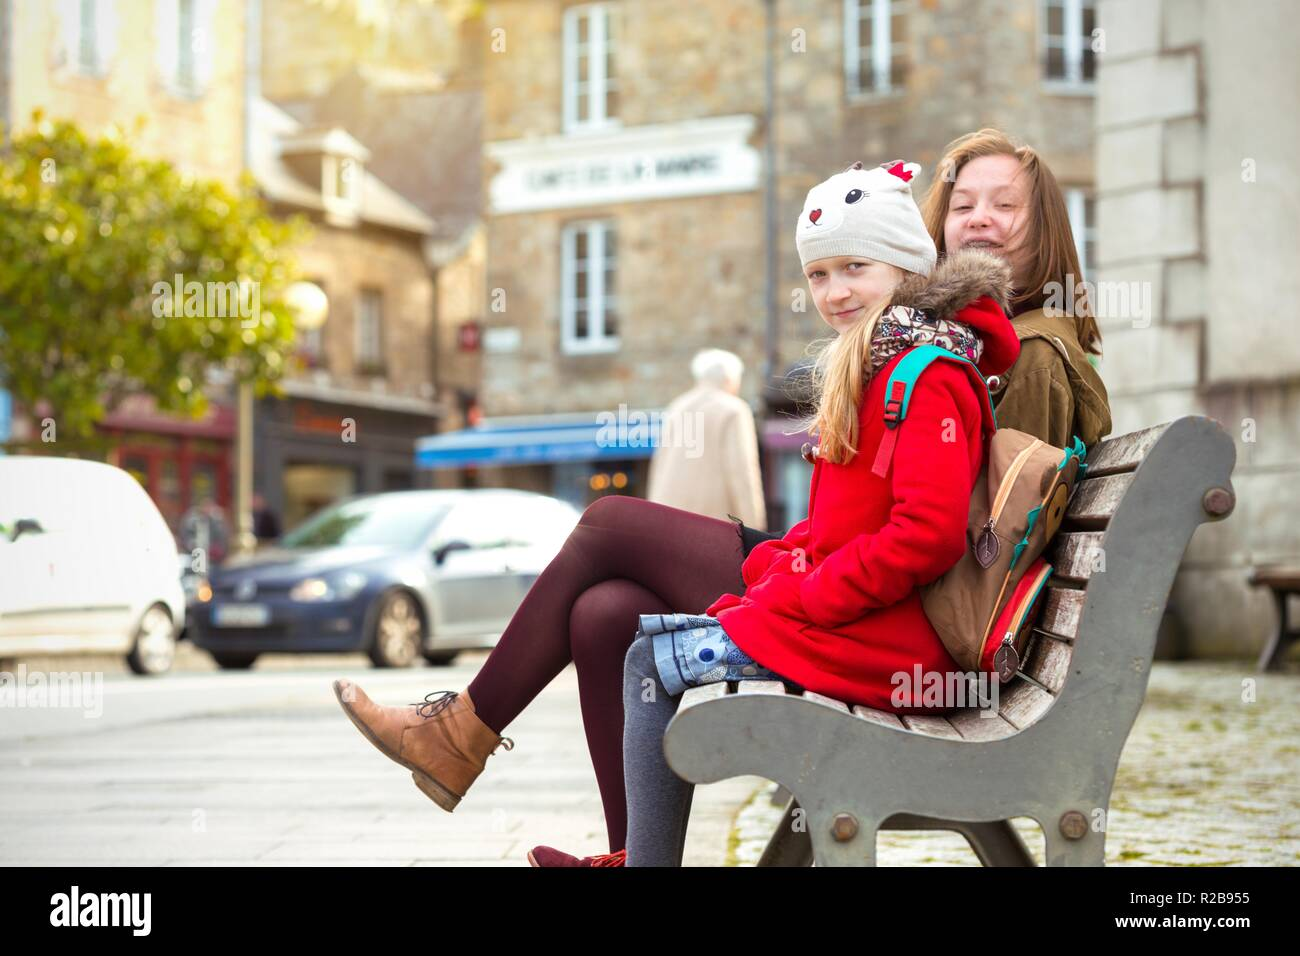 the sisters are sitting on the bench in the famous city of Dinan. France. - Stock Image